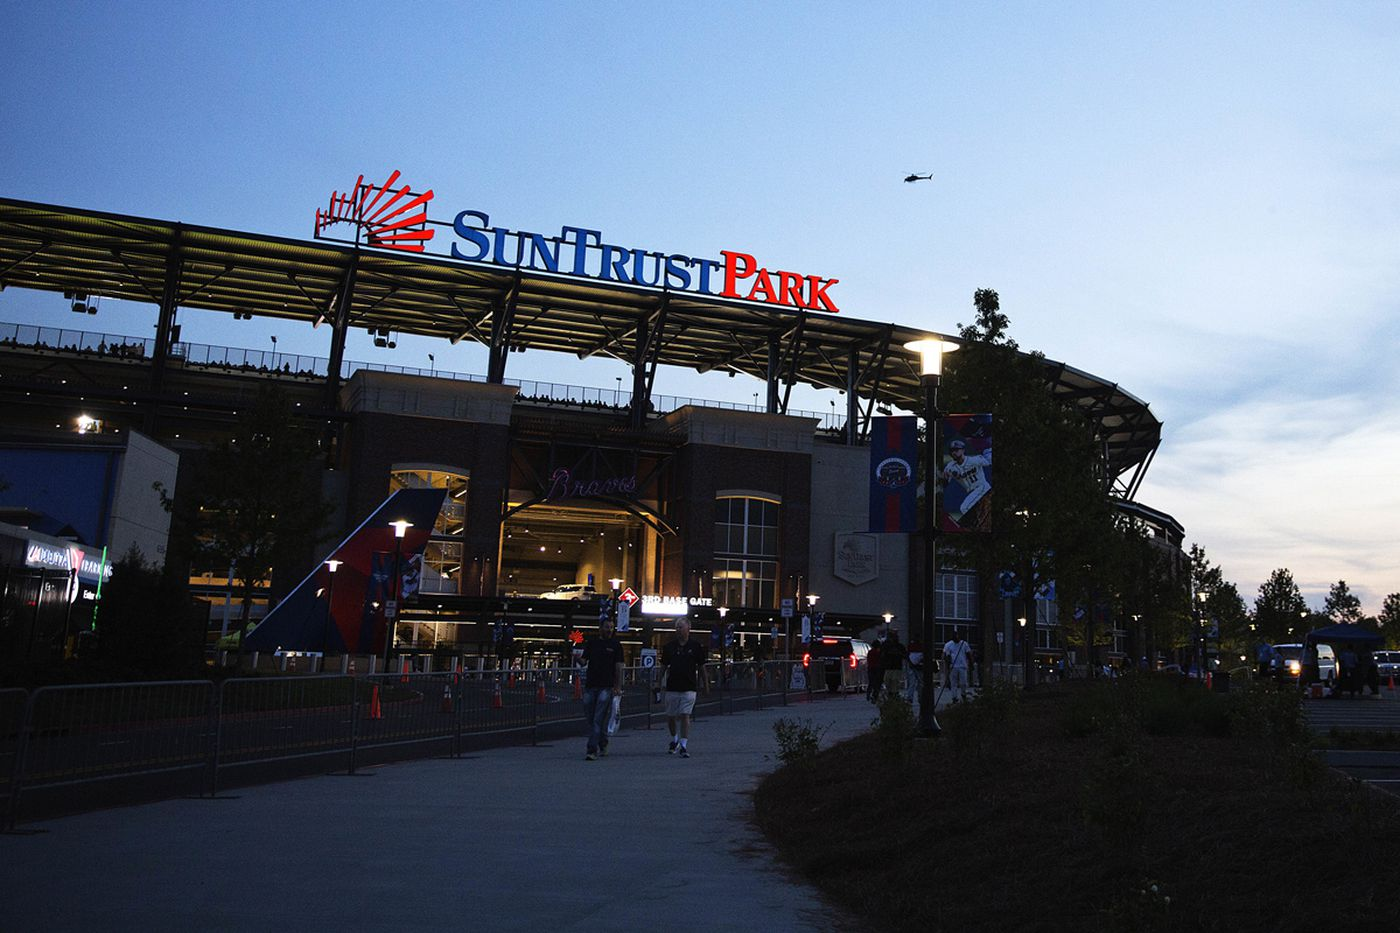 Braves game goes on as scheduled after dead body found in beer cooler